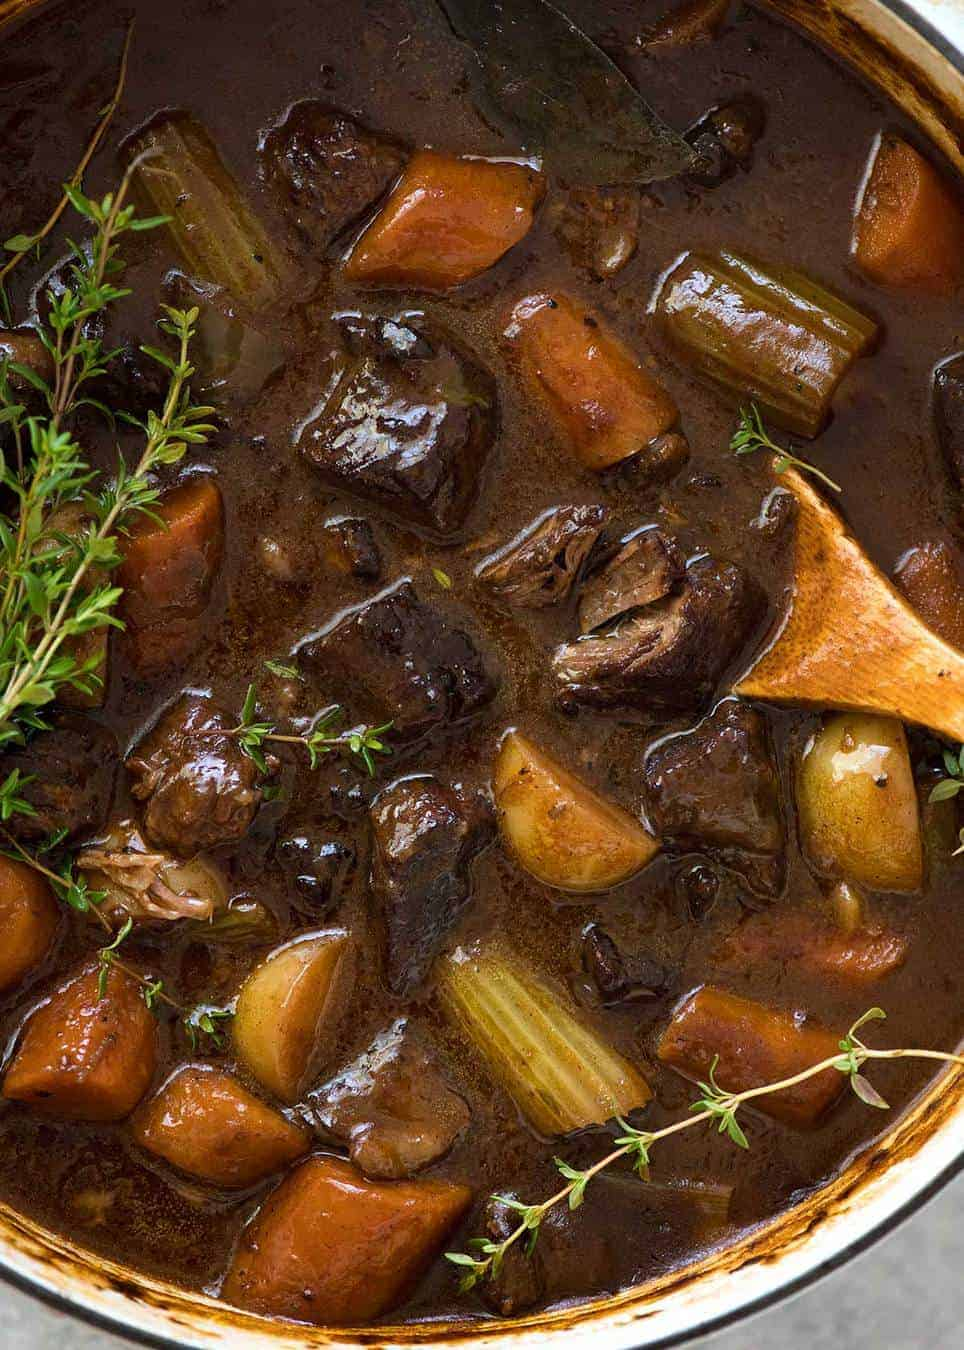 Overhead photo of Beef Stew with carrots and potatoes in a casserole pot.